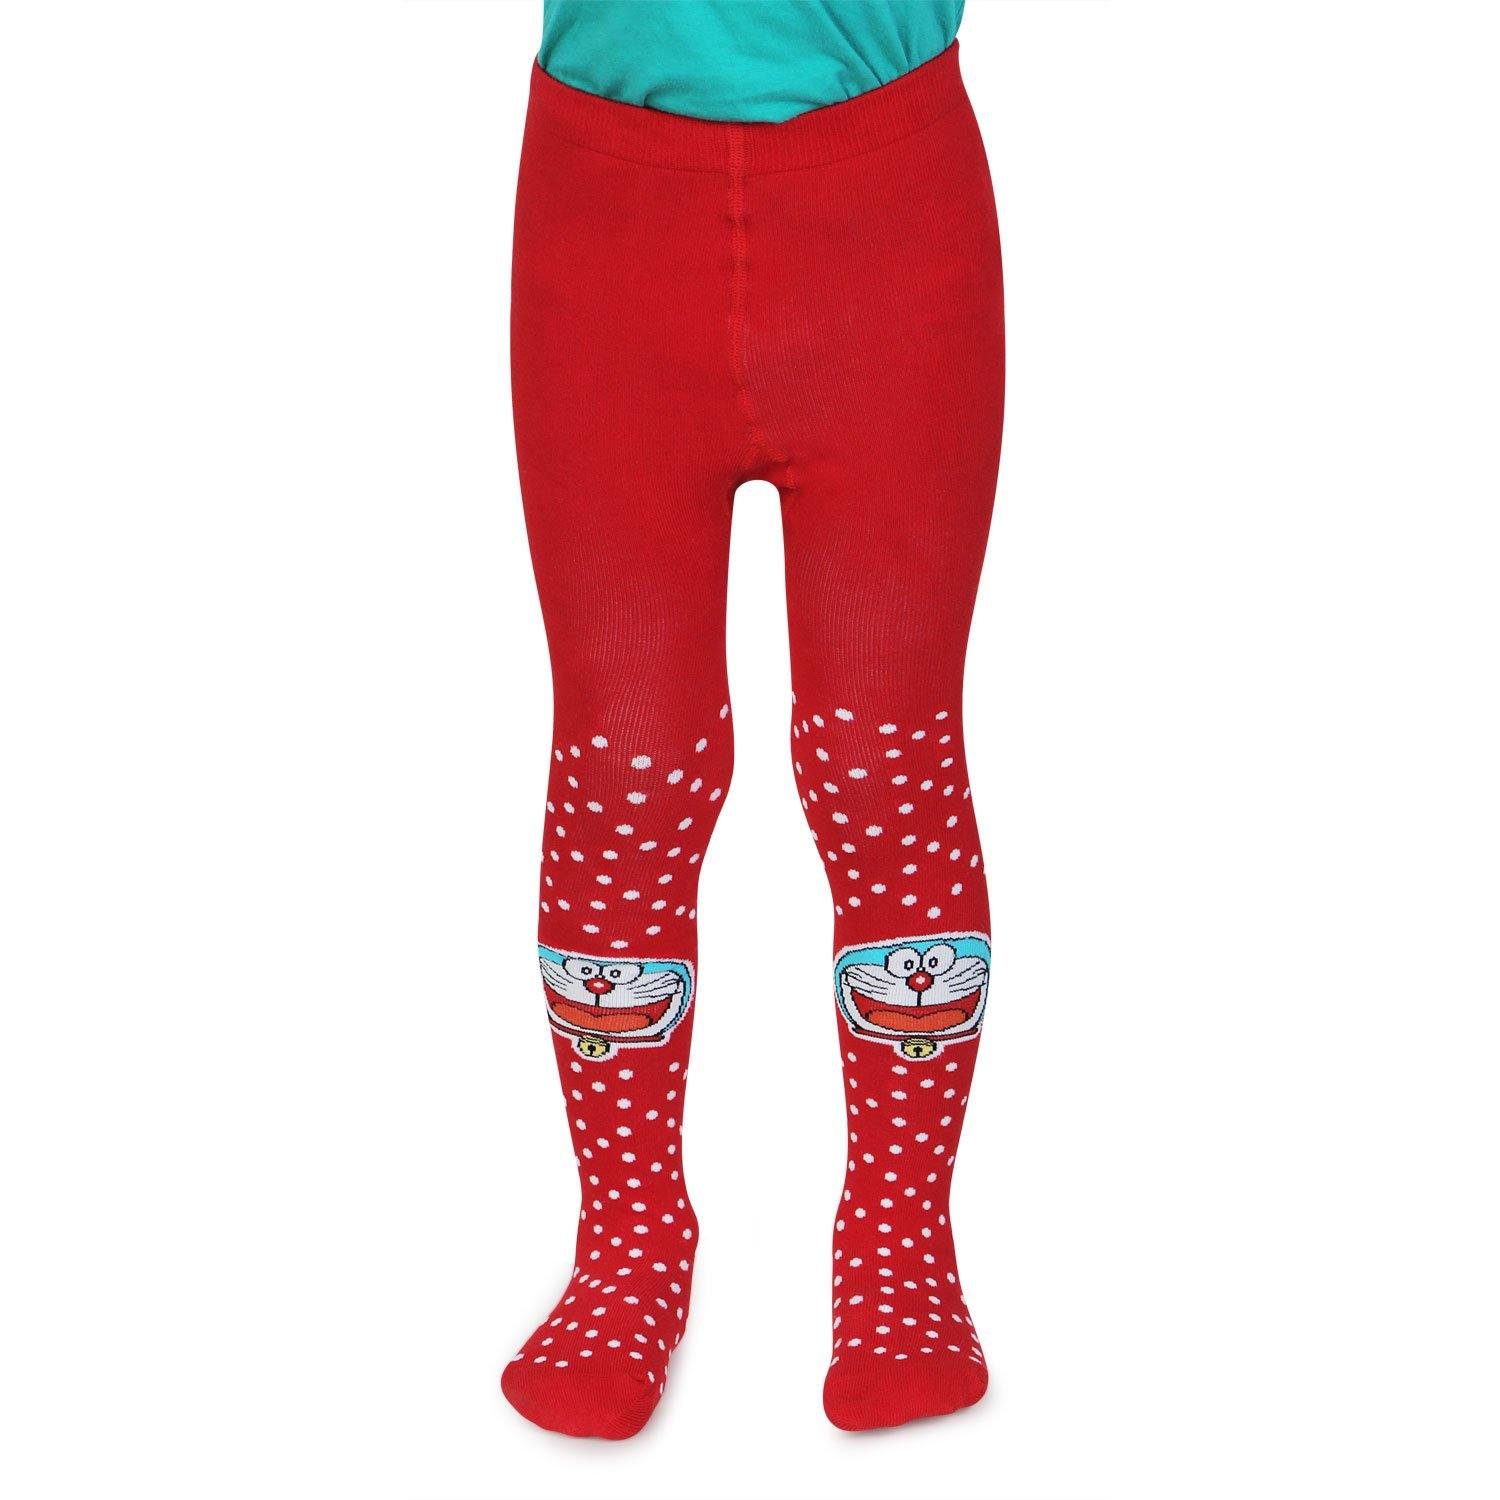 Doraemon Knitted Tights for Baby Boys - Red